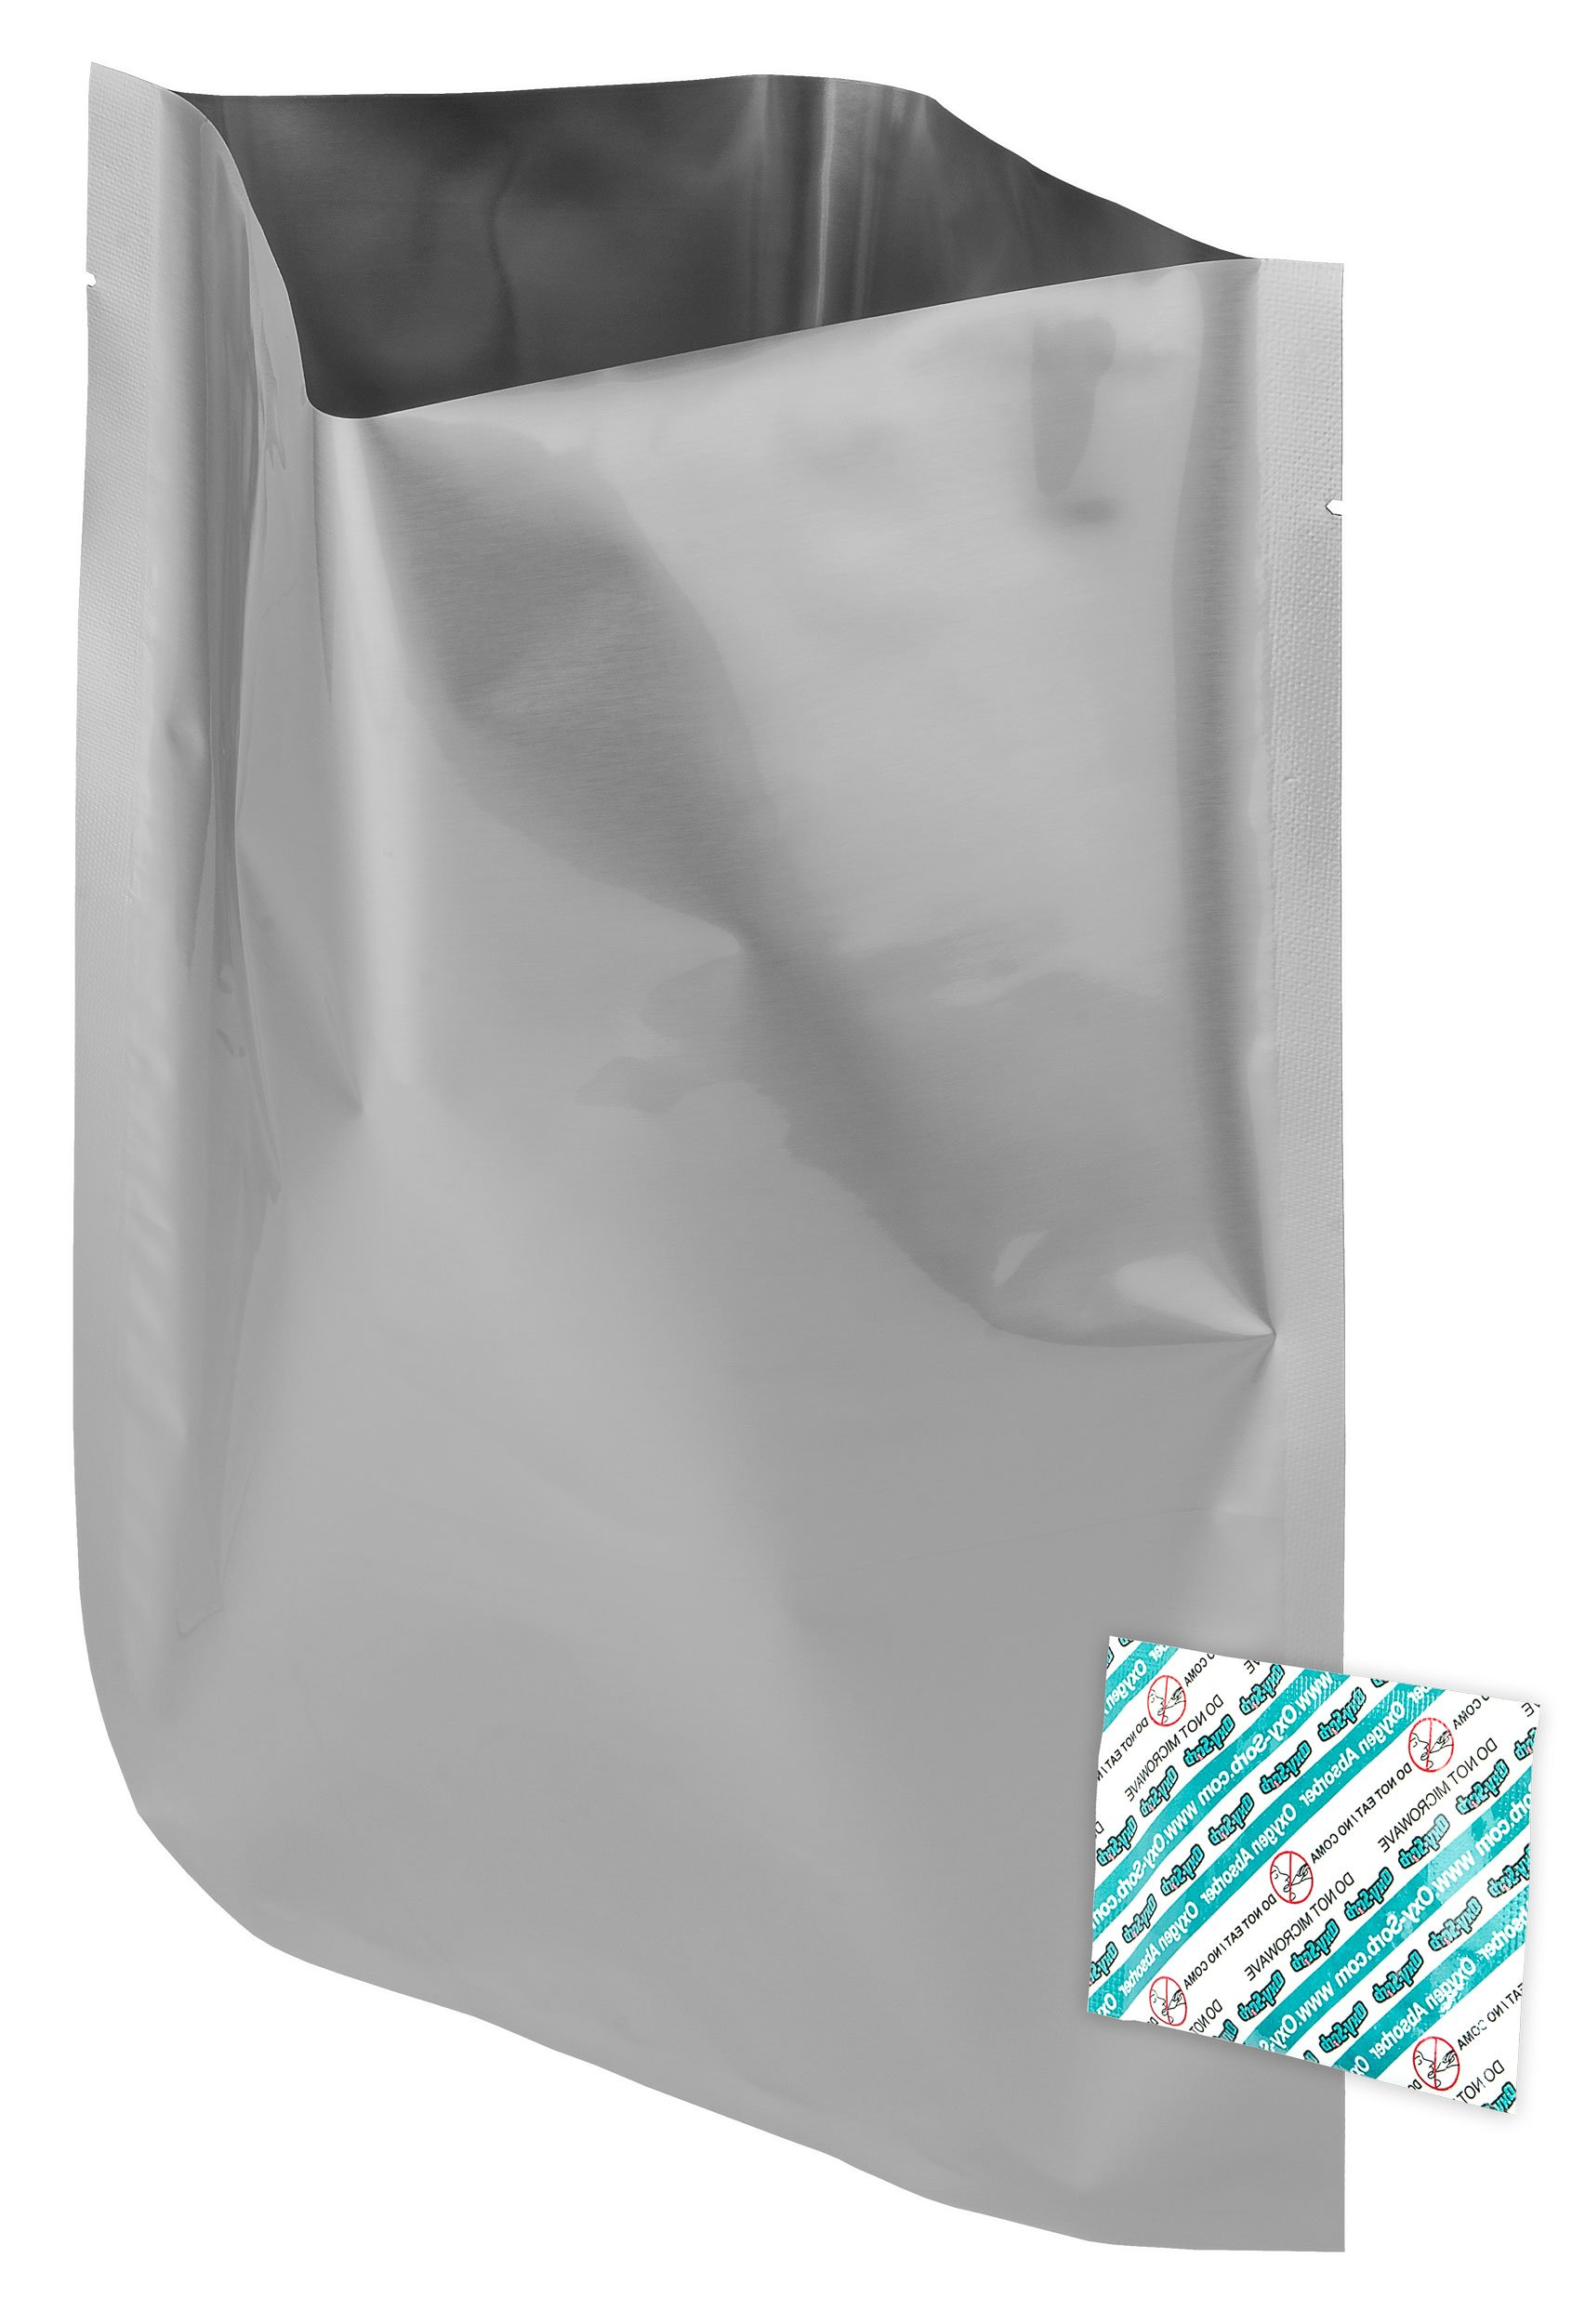 Dry-Packs 60-1-Gallon Mylar Bags, 10 by 14-Inch for Dried Food and Long Term Storage